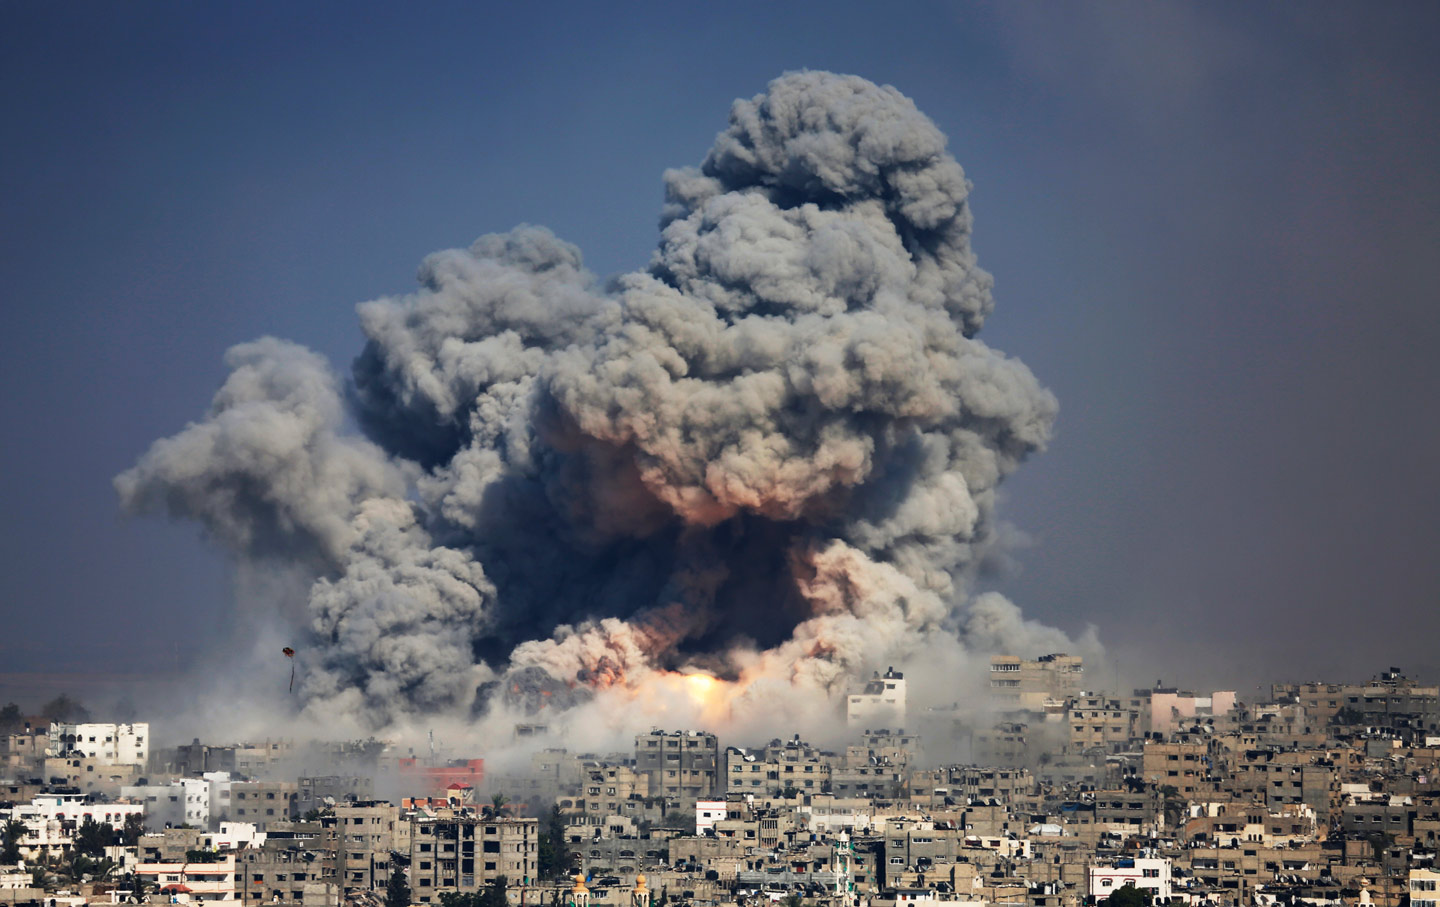 An Israeli strike over Gaza City